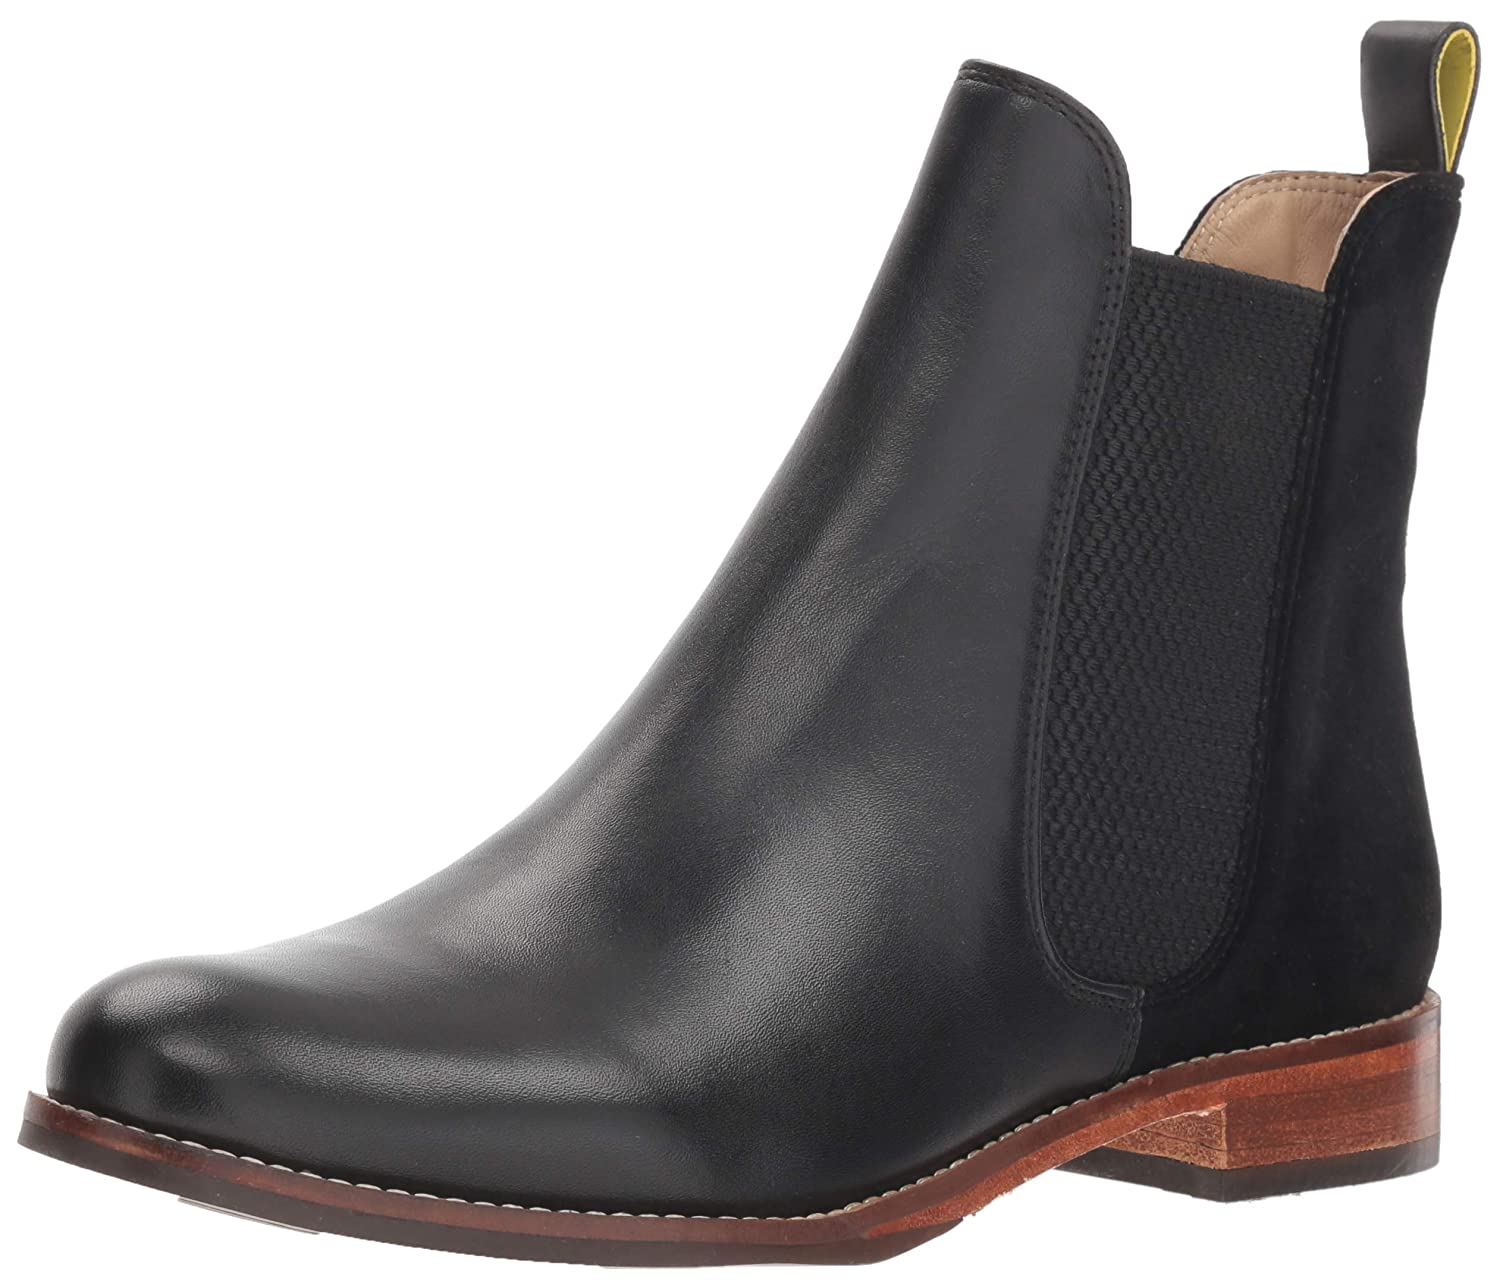 [Joules] Women's V-Westbourne High-Top Leather Rain Boot B07KSHXYFS ブラックベルベット Women's 7